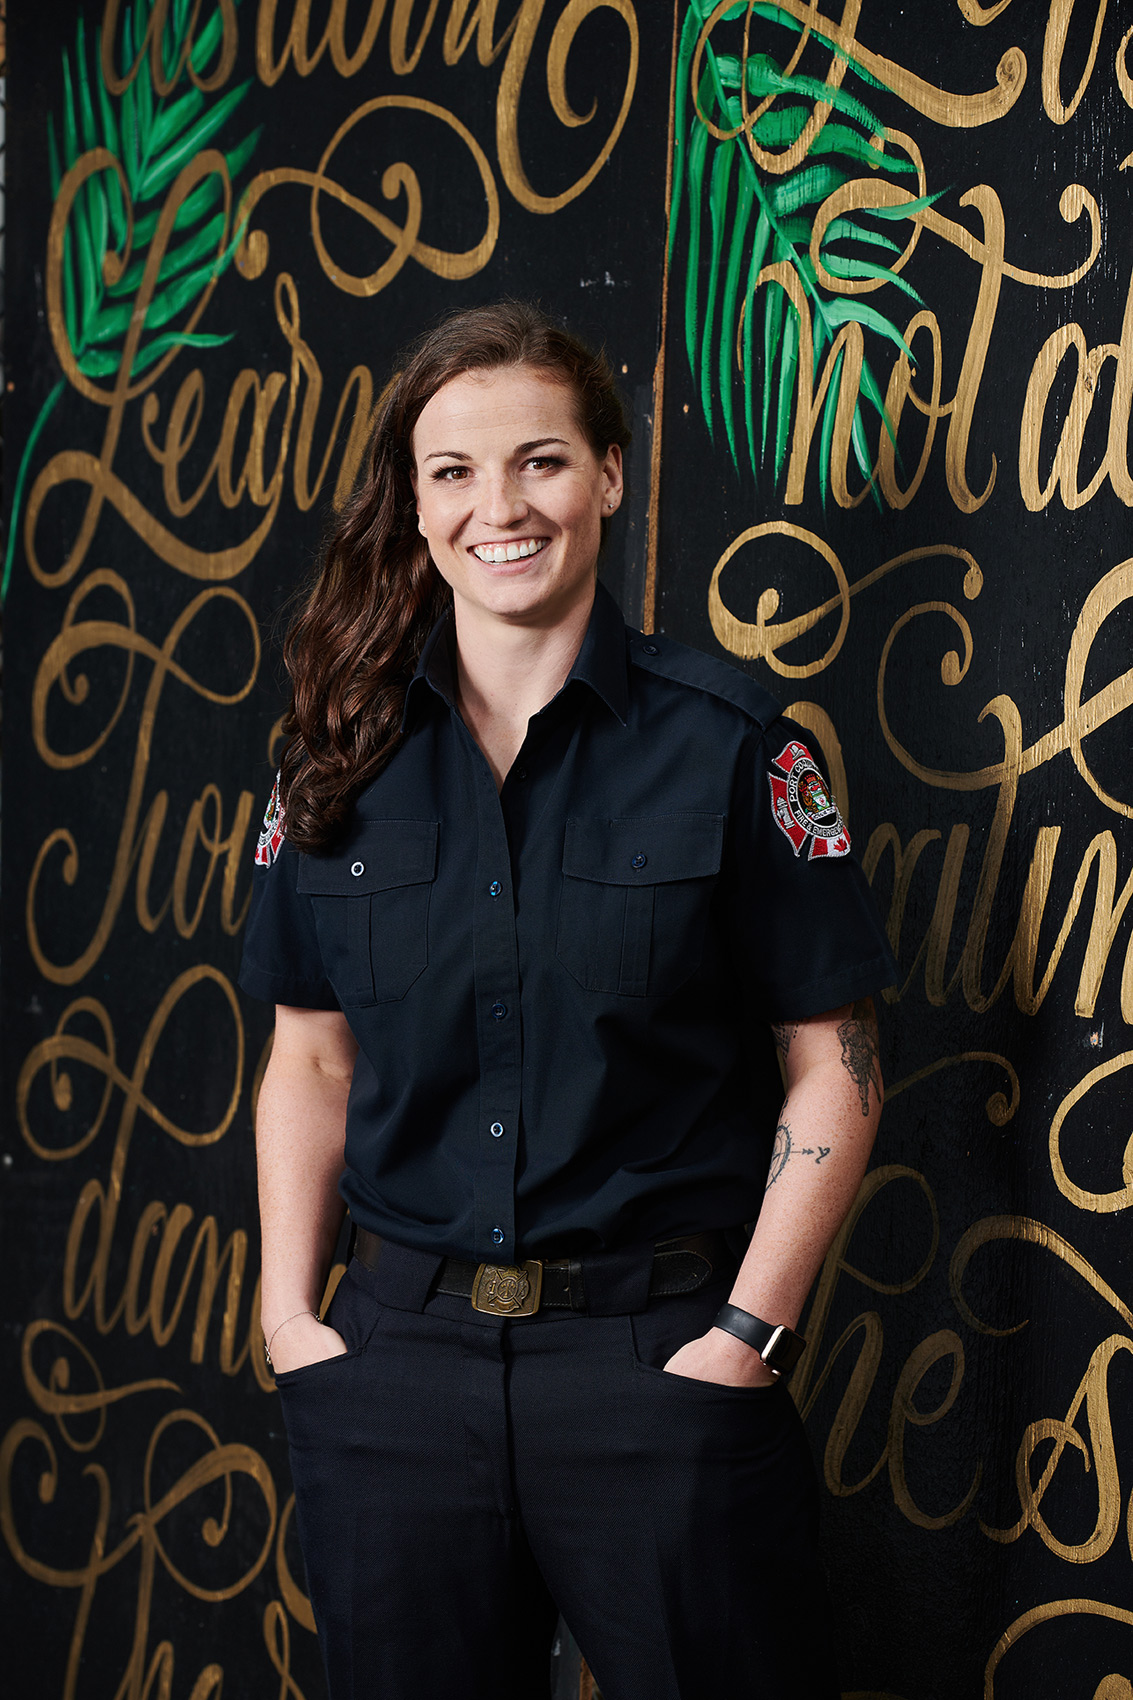 HOF-Hall-of-Flame-Calender-Erich-Saide-Vancouver-Portrait-Photographer-Female-Firefighters-First-Responders-Hot-Hero-August-Emily-Uniform